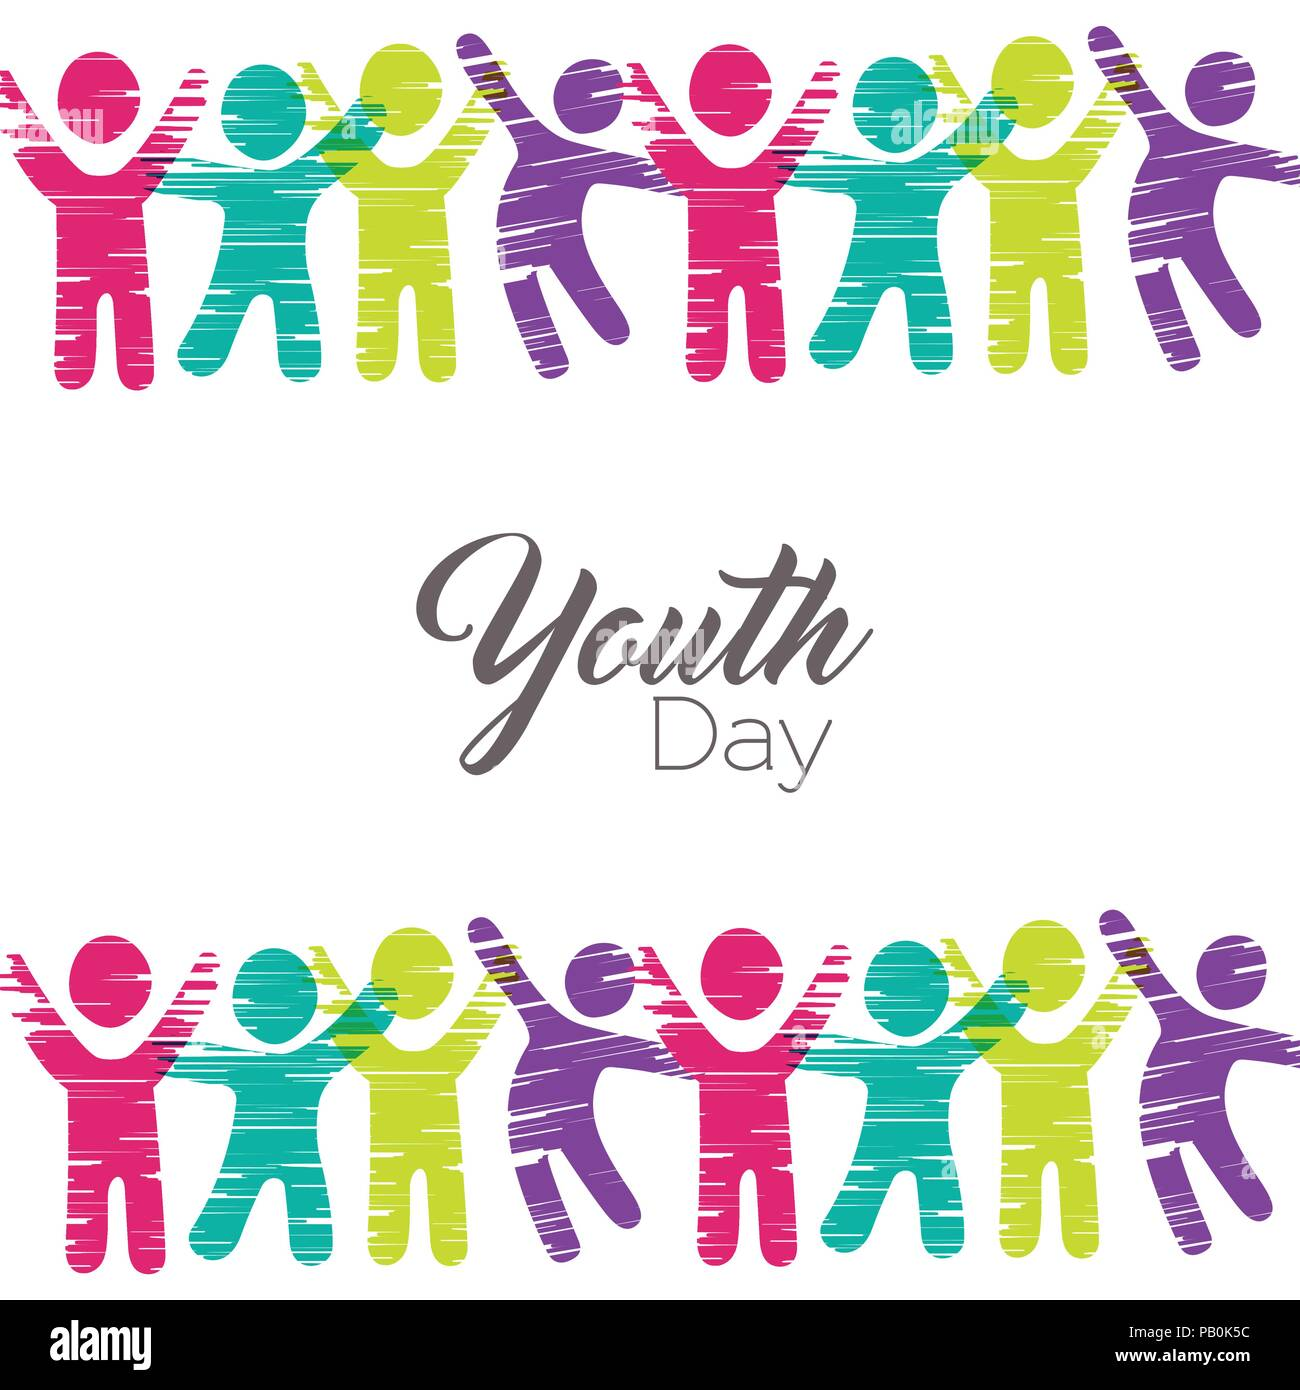 Happy Youth Day Greeting Card Illustration People Icons In